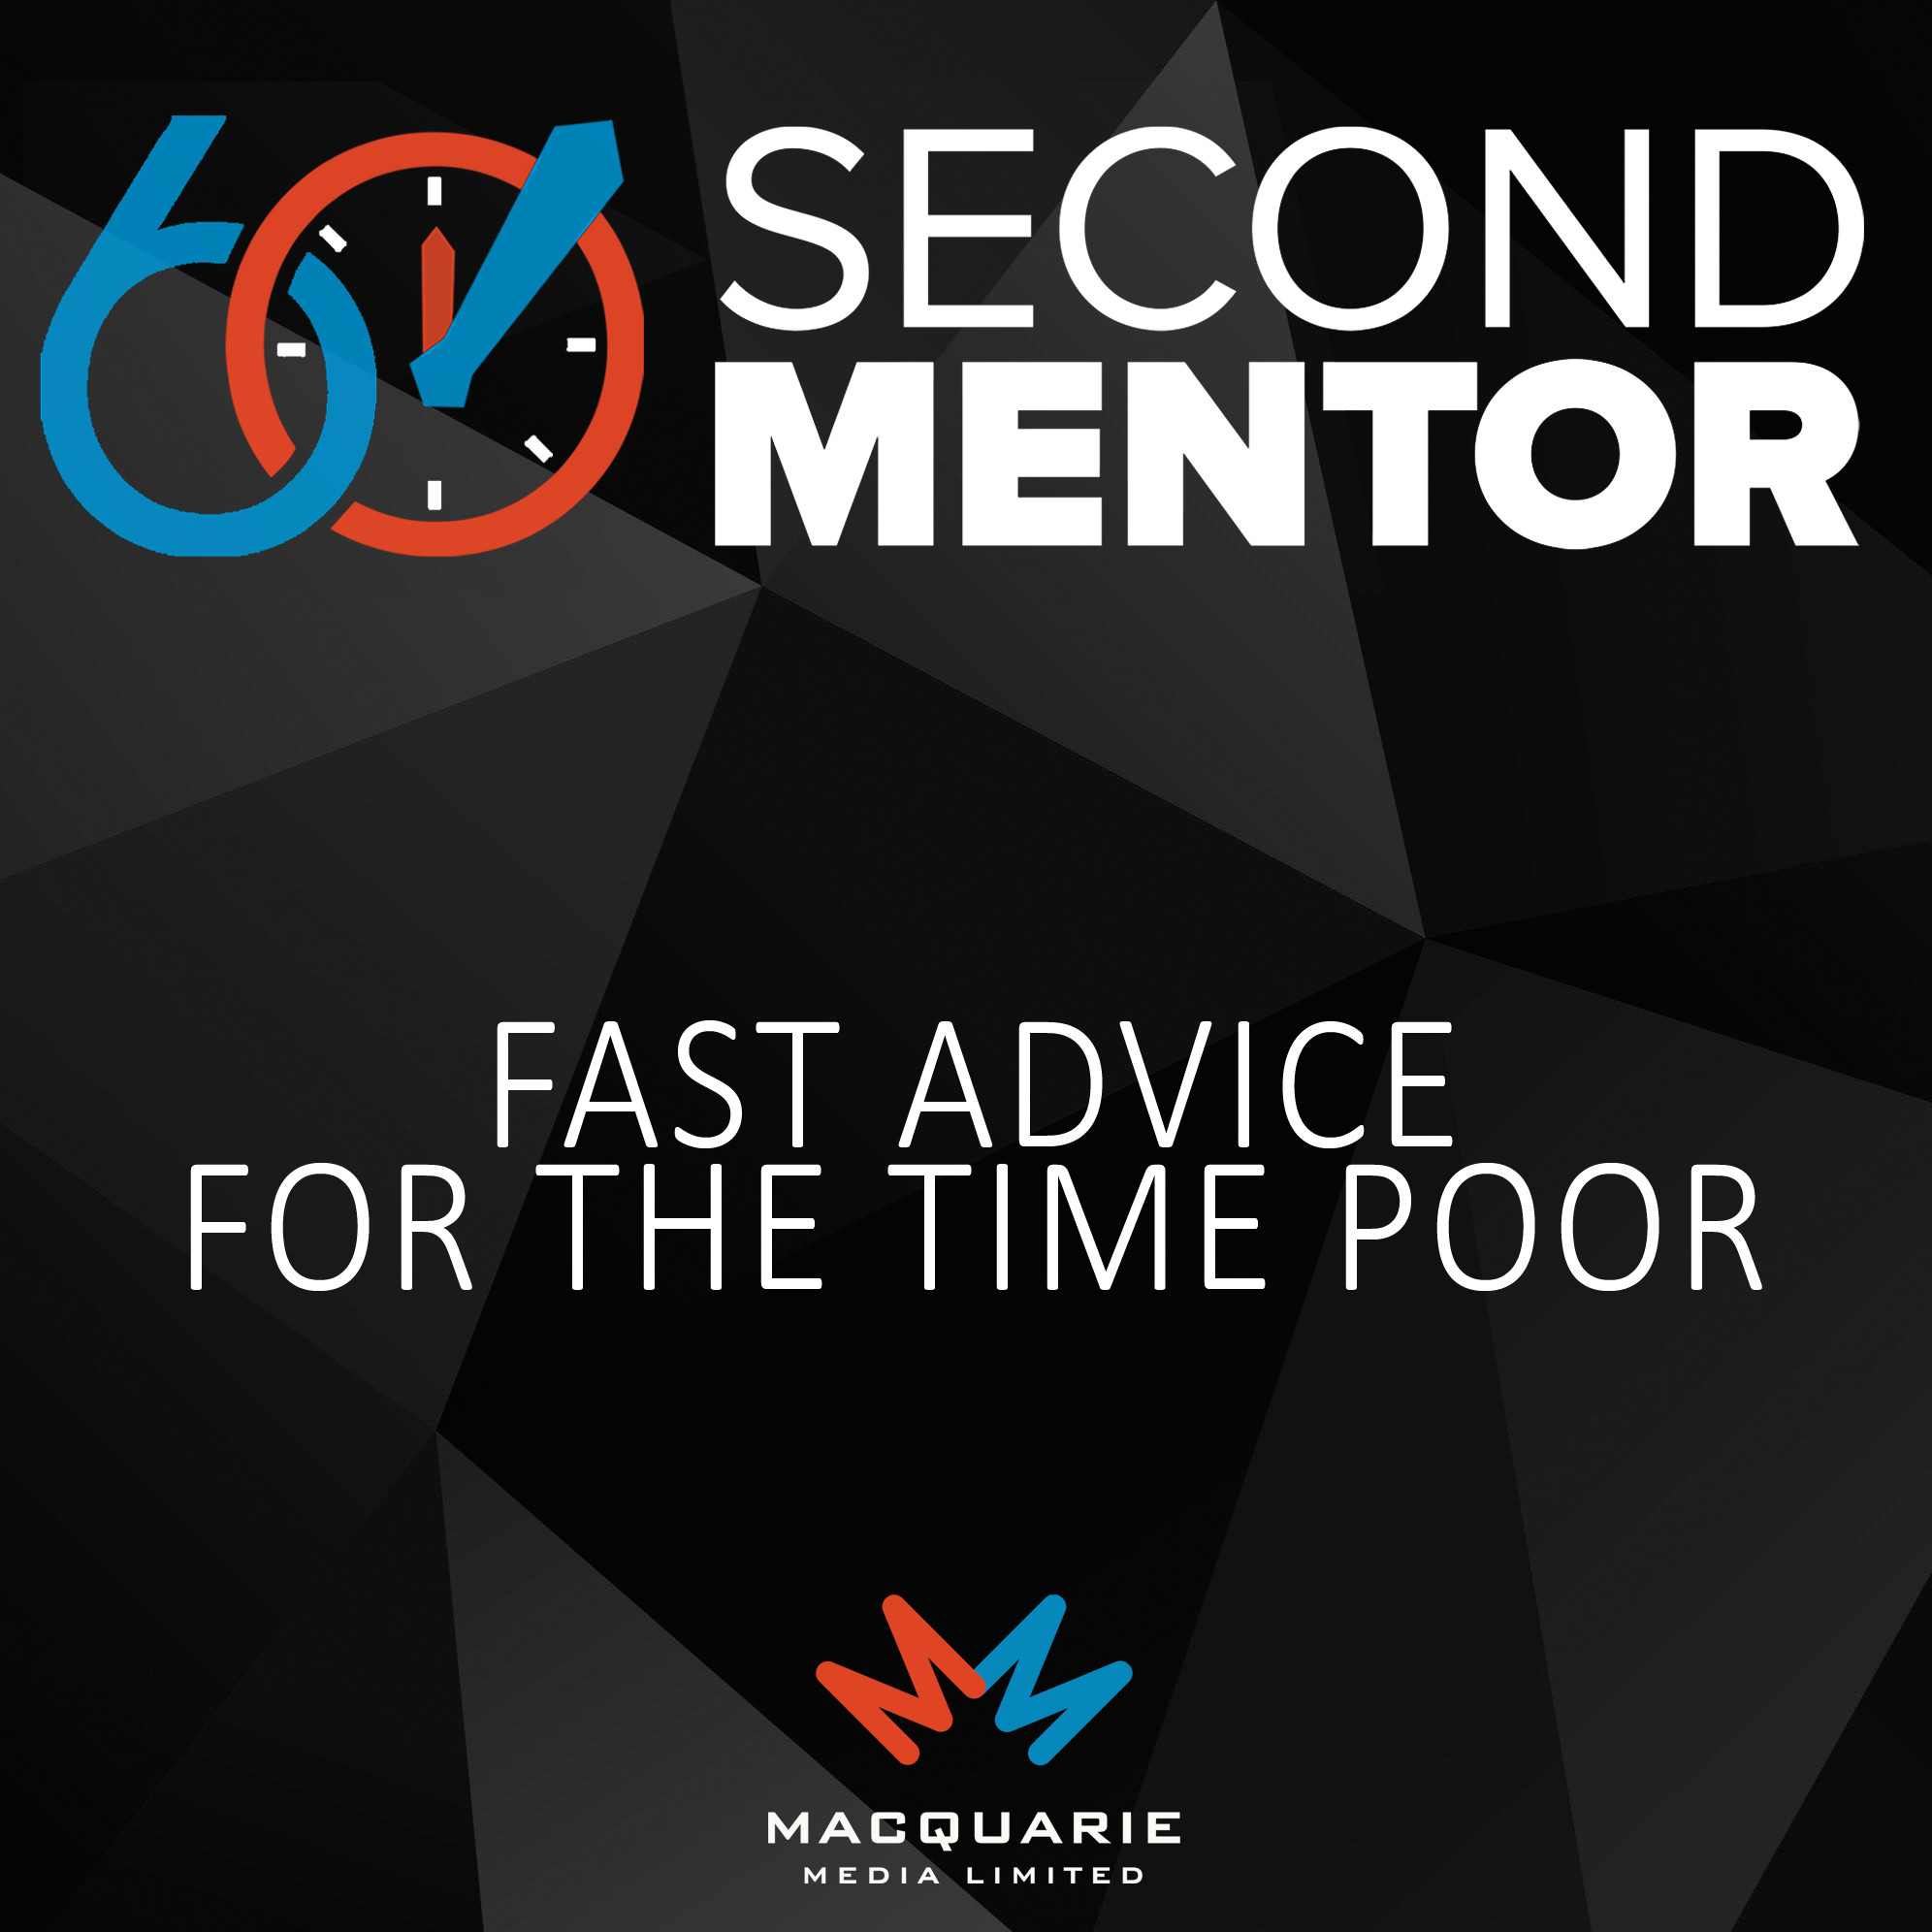 <![CDATA[The 60 Second Mentor]]>